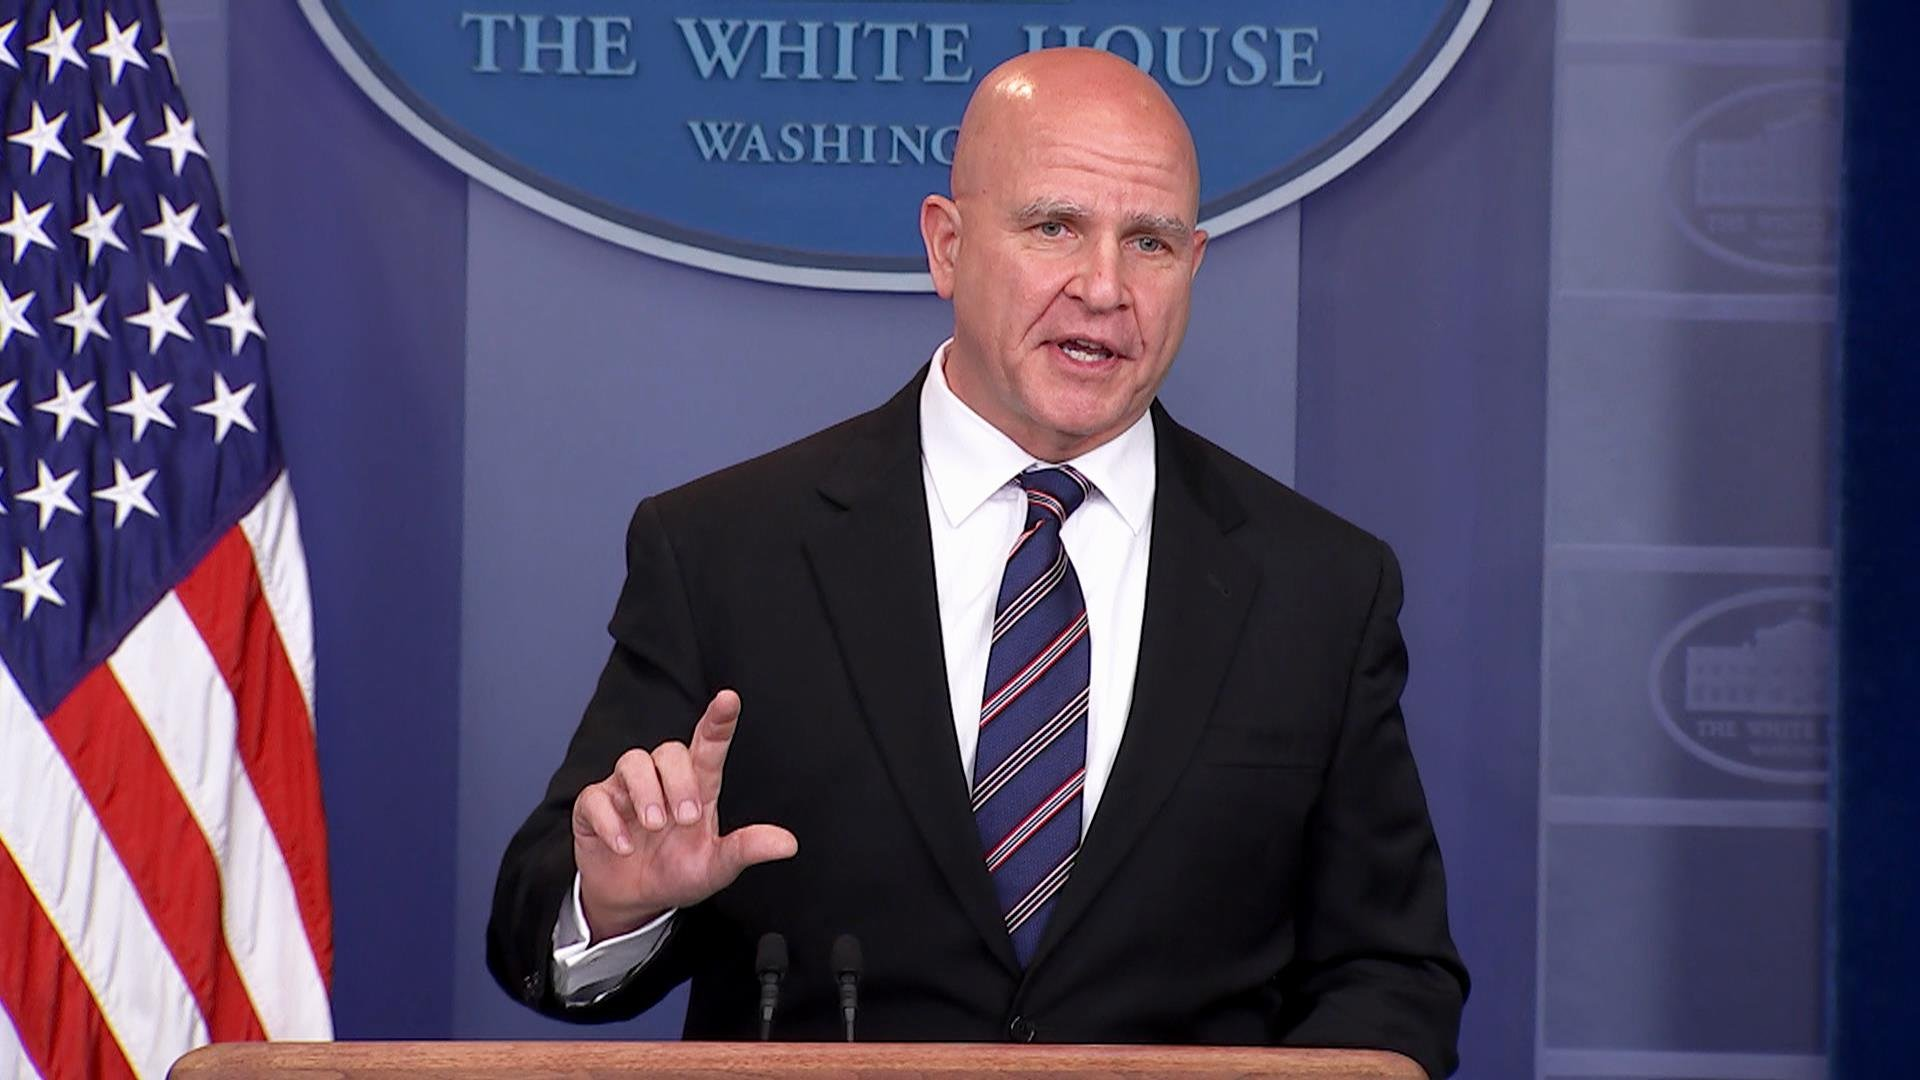 McMaster Out? White House Preparing for Exit